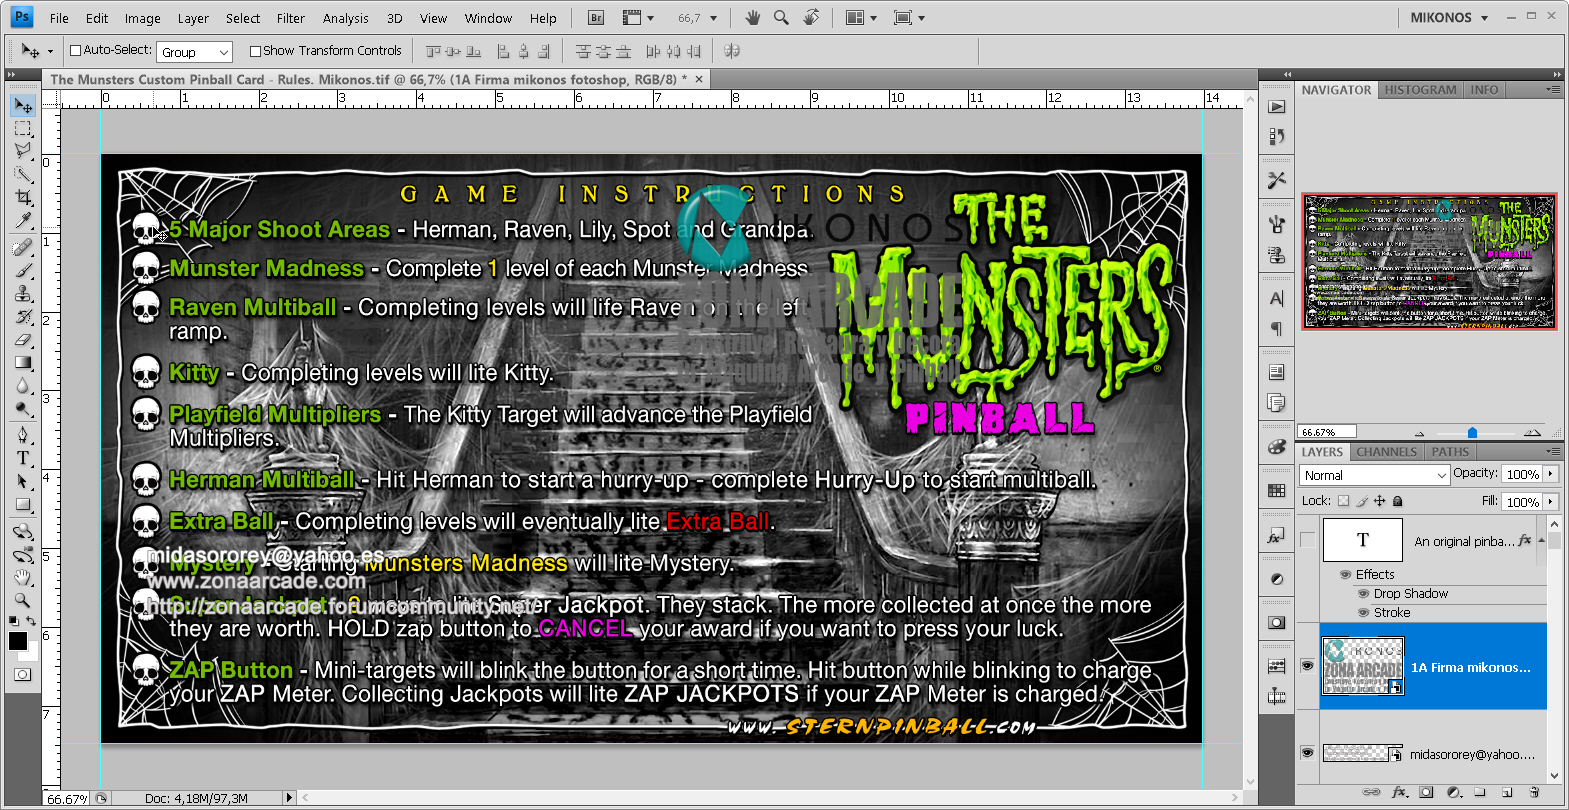 The Munsters Pinball Card Customized - Rules. Mikonos1